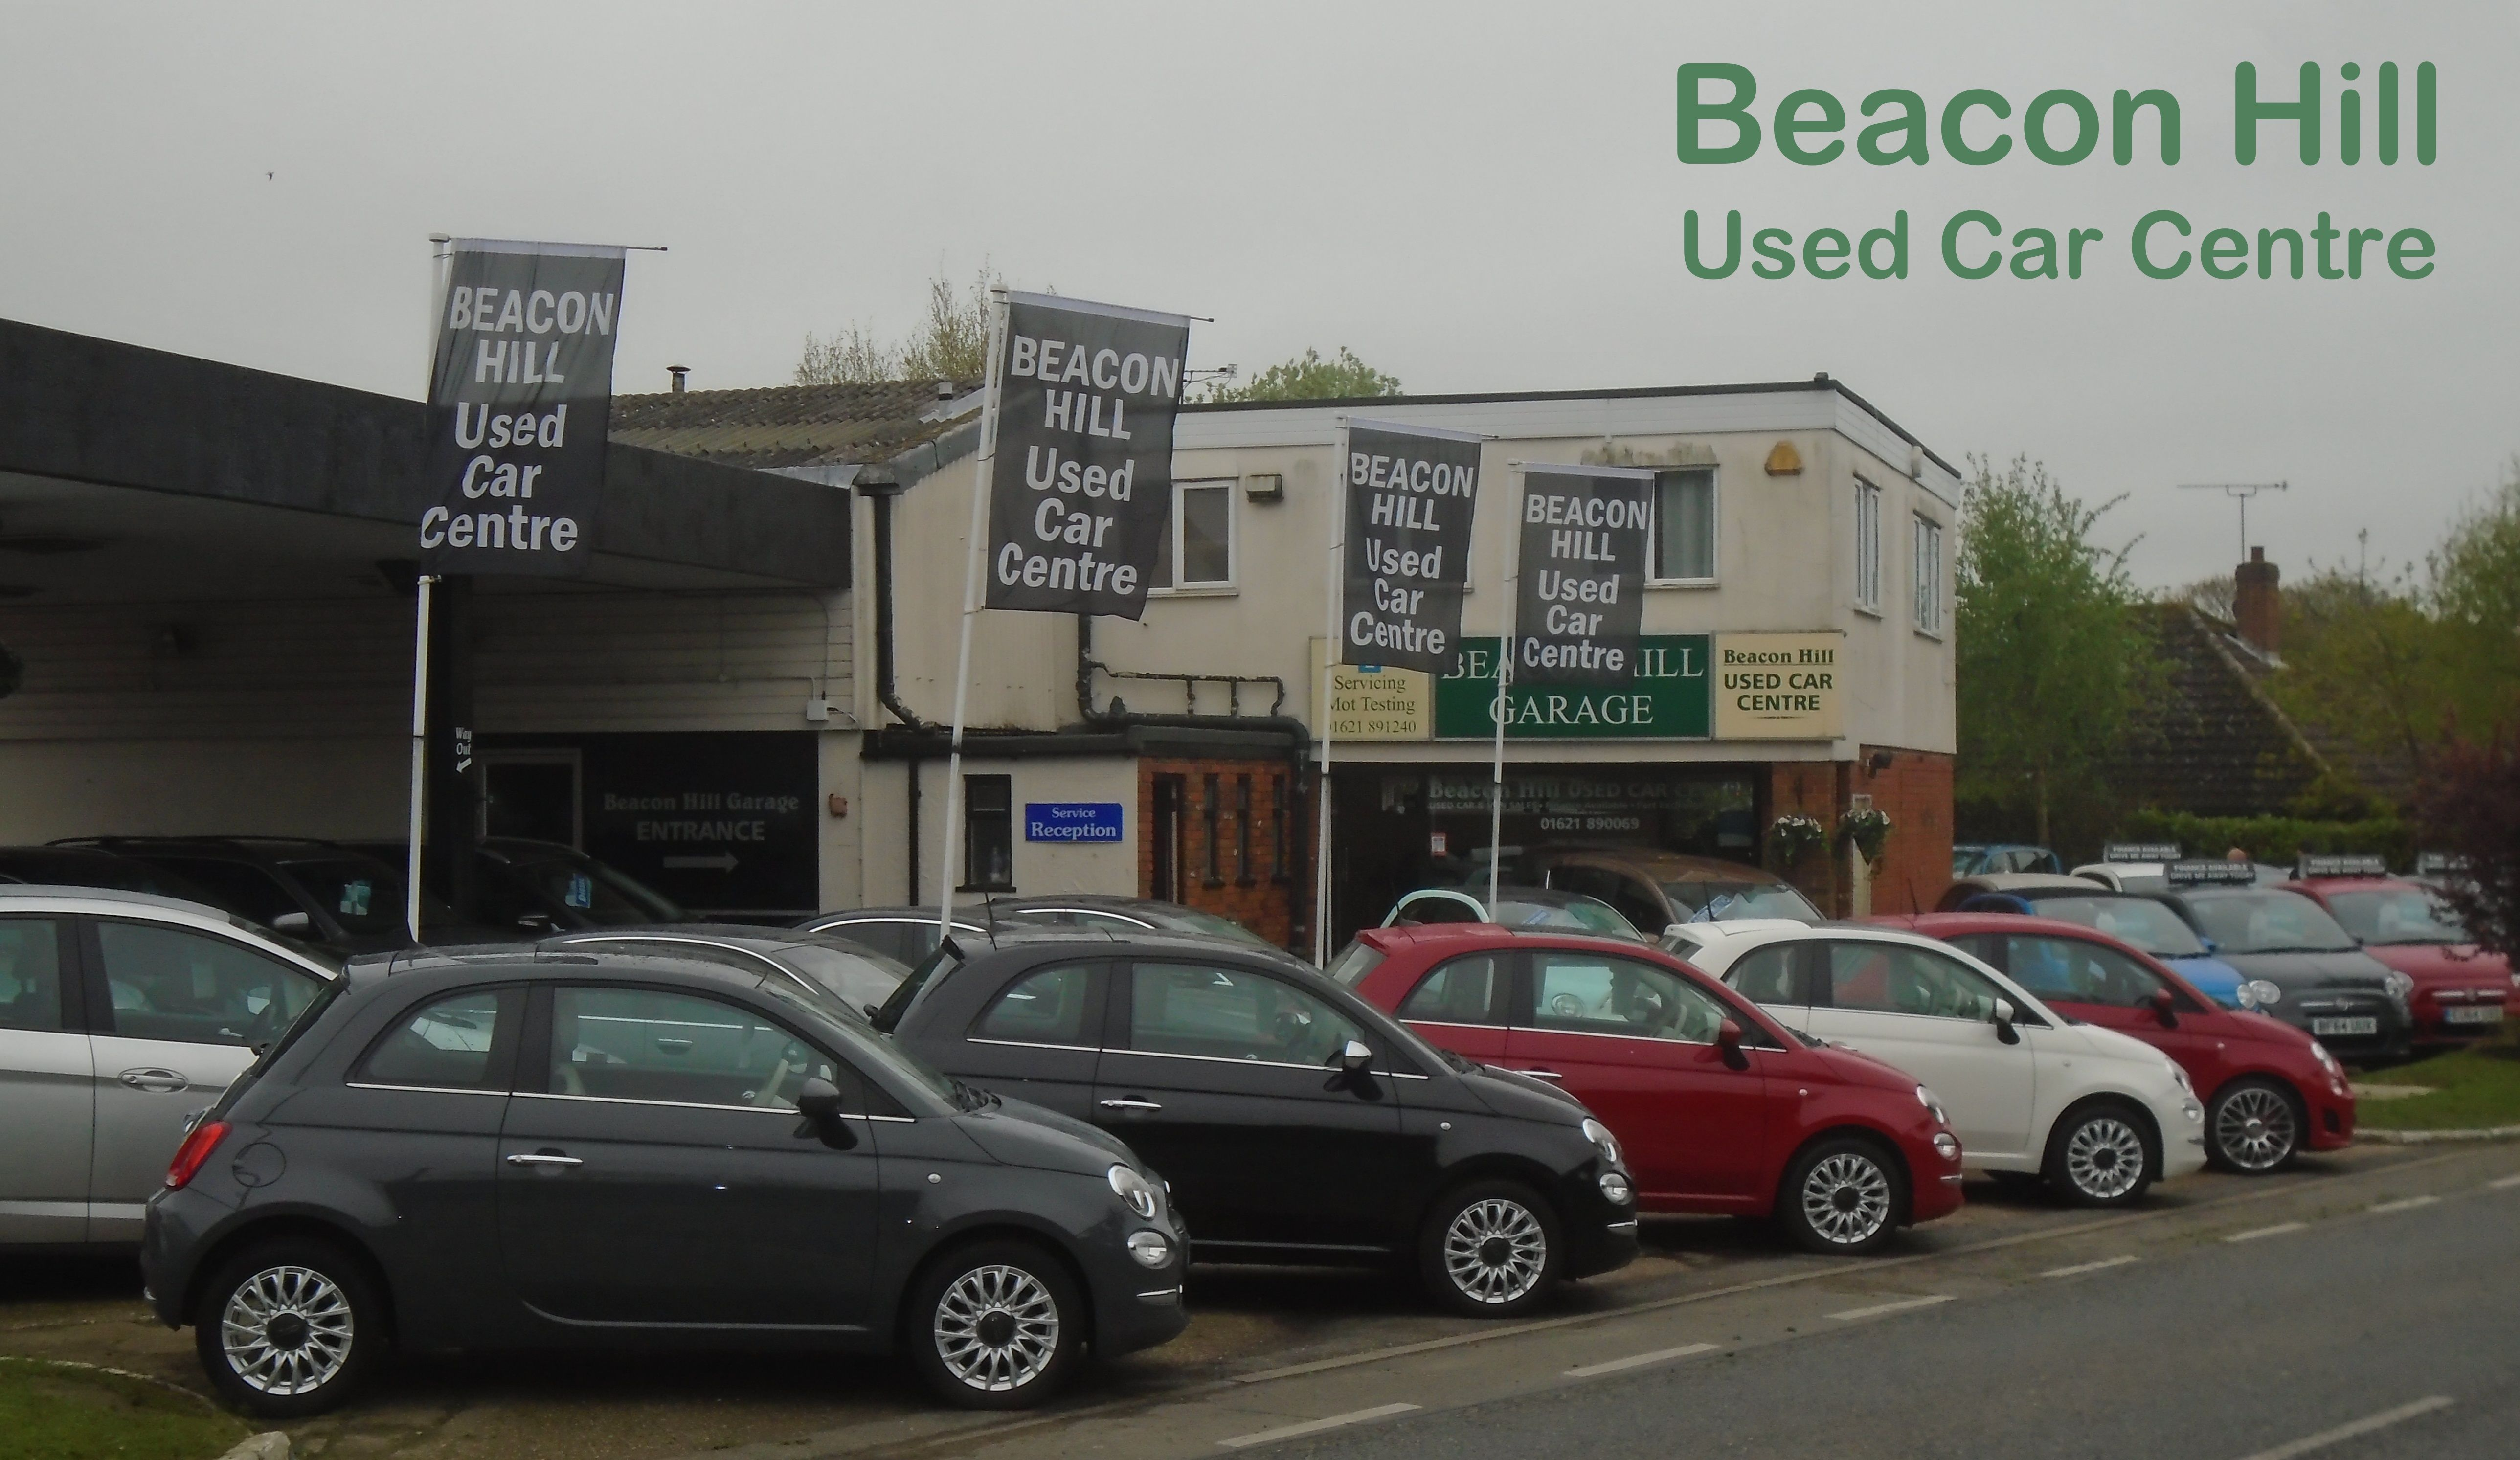 Garys Used Cars Lovely Beacon Hill Used Car Centre In Wickham Bishops Used Cars Es